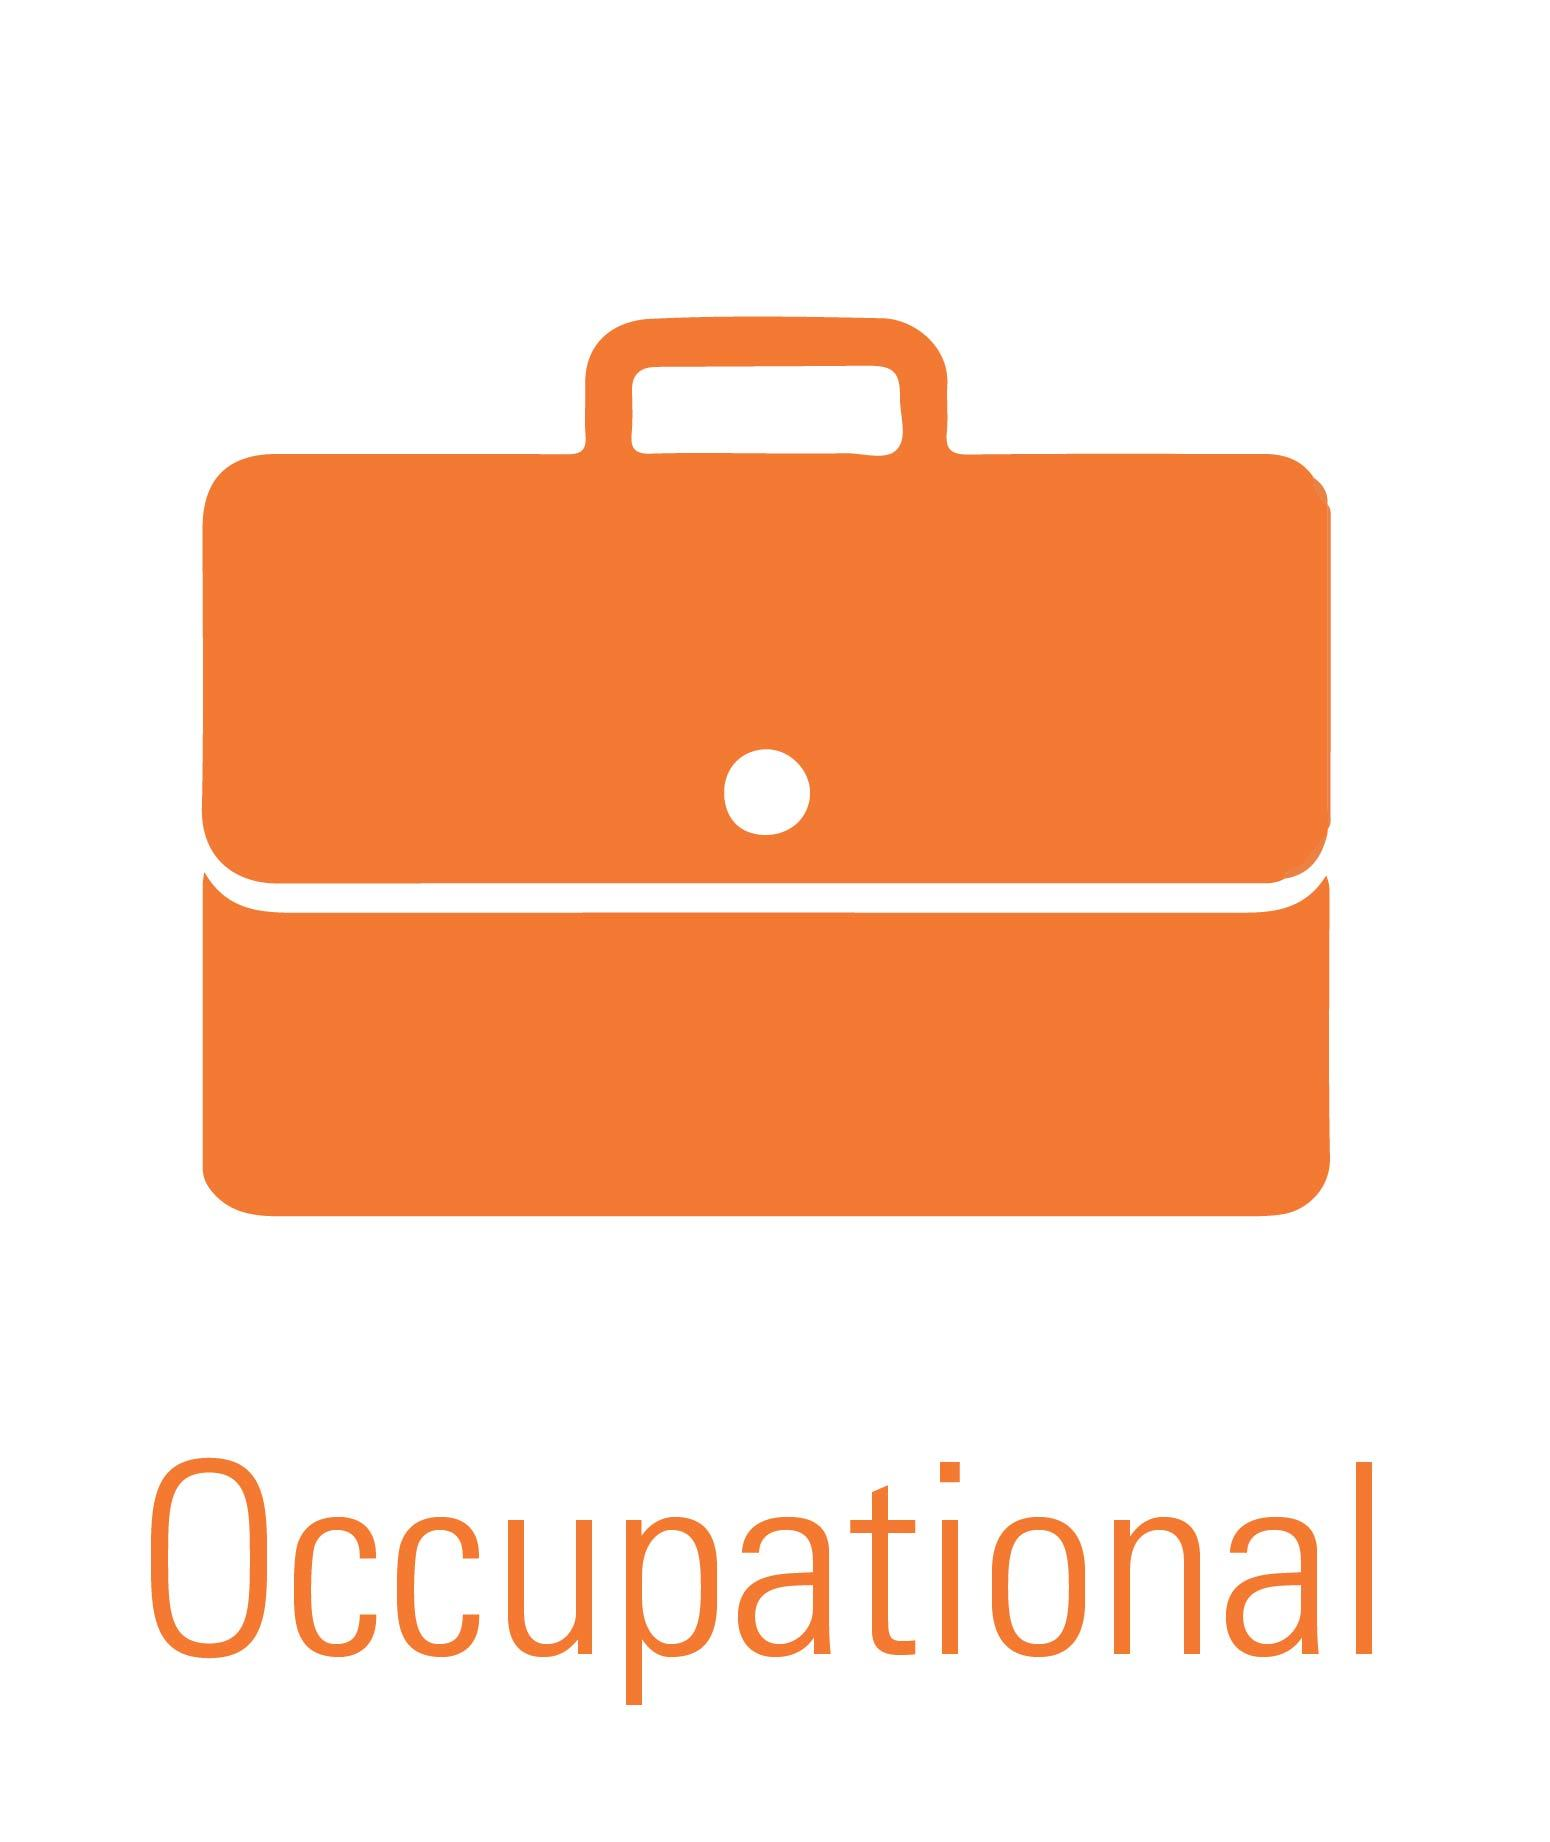 Occupational Well-Being